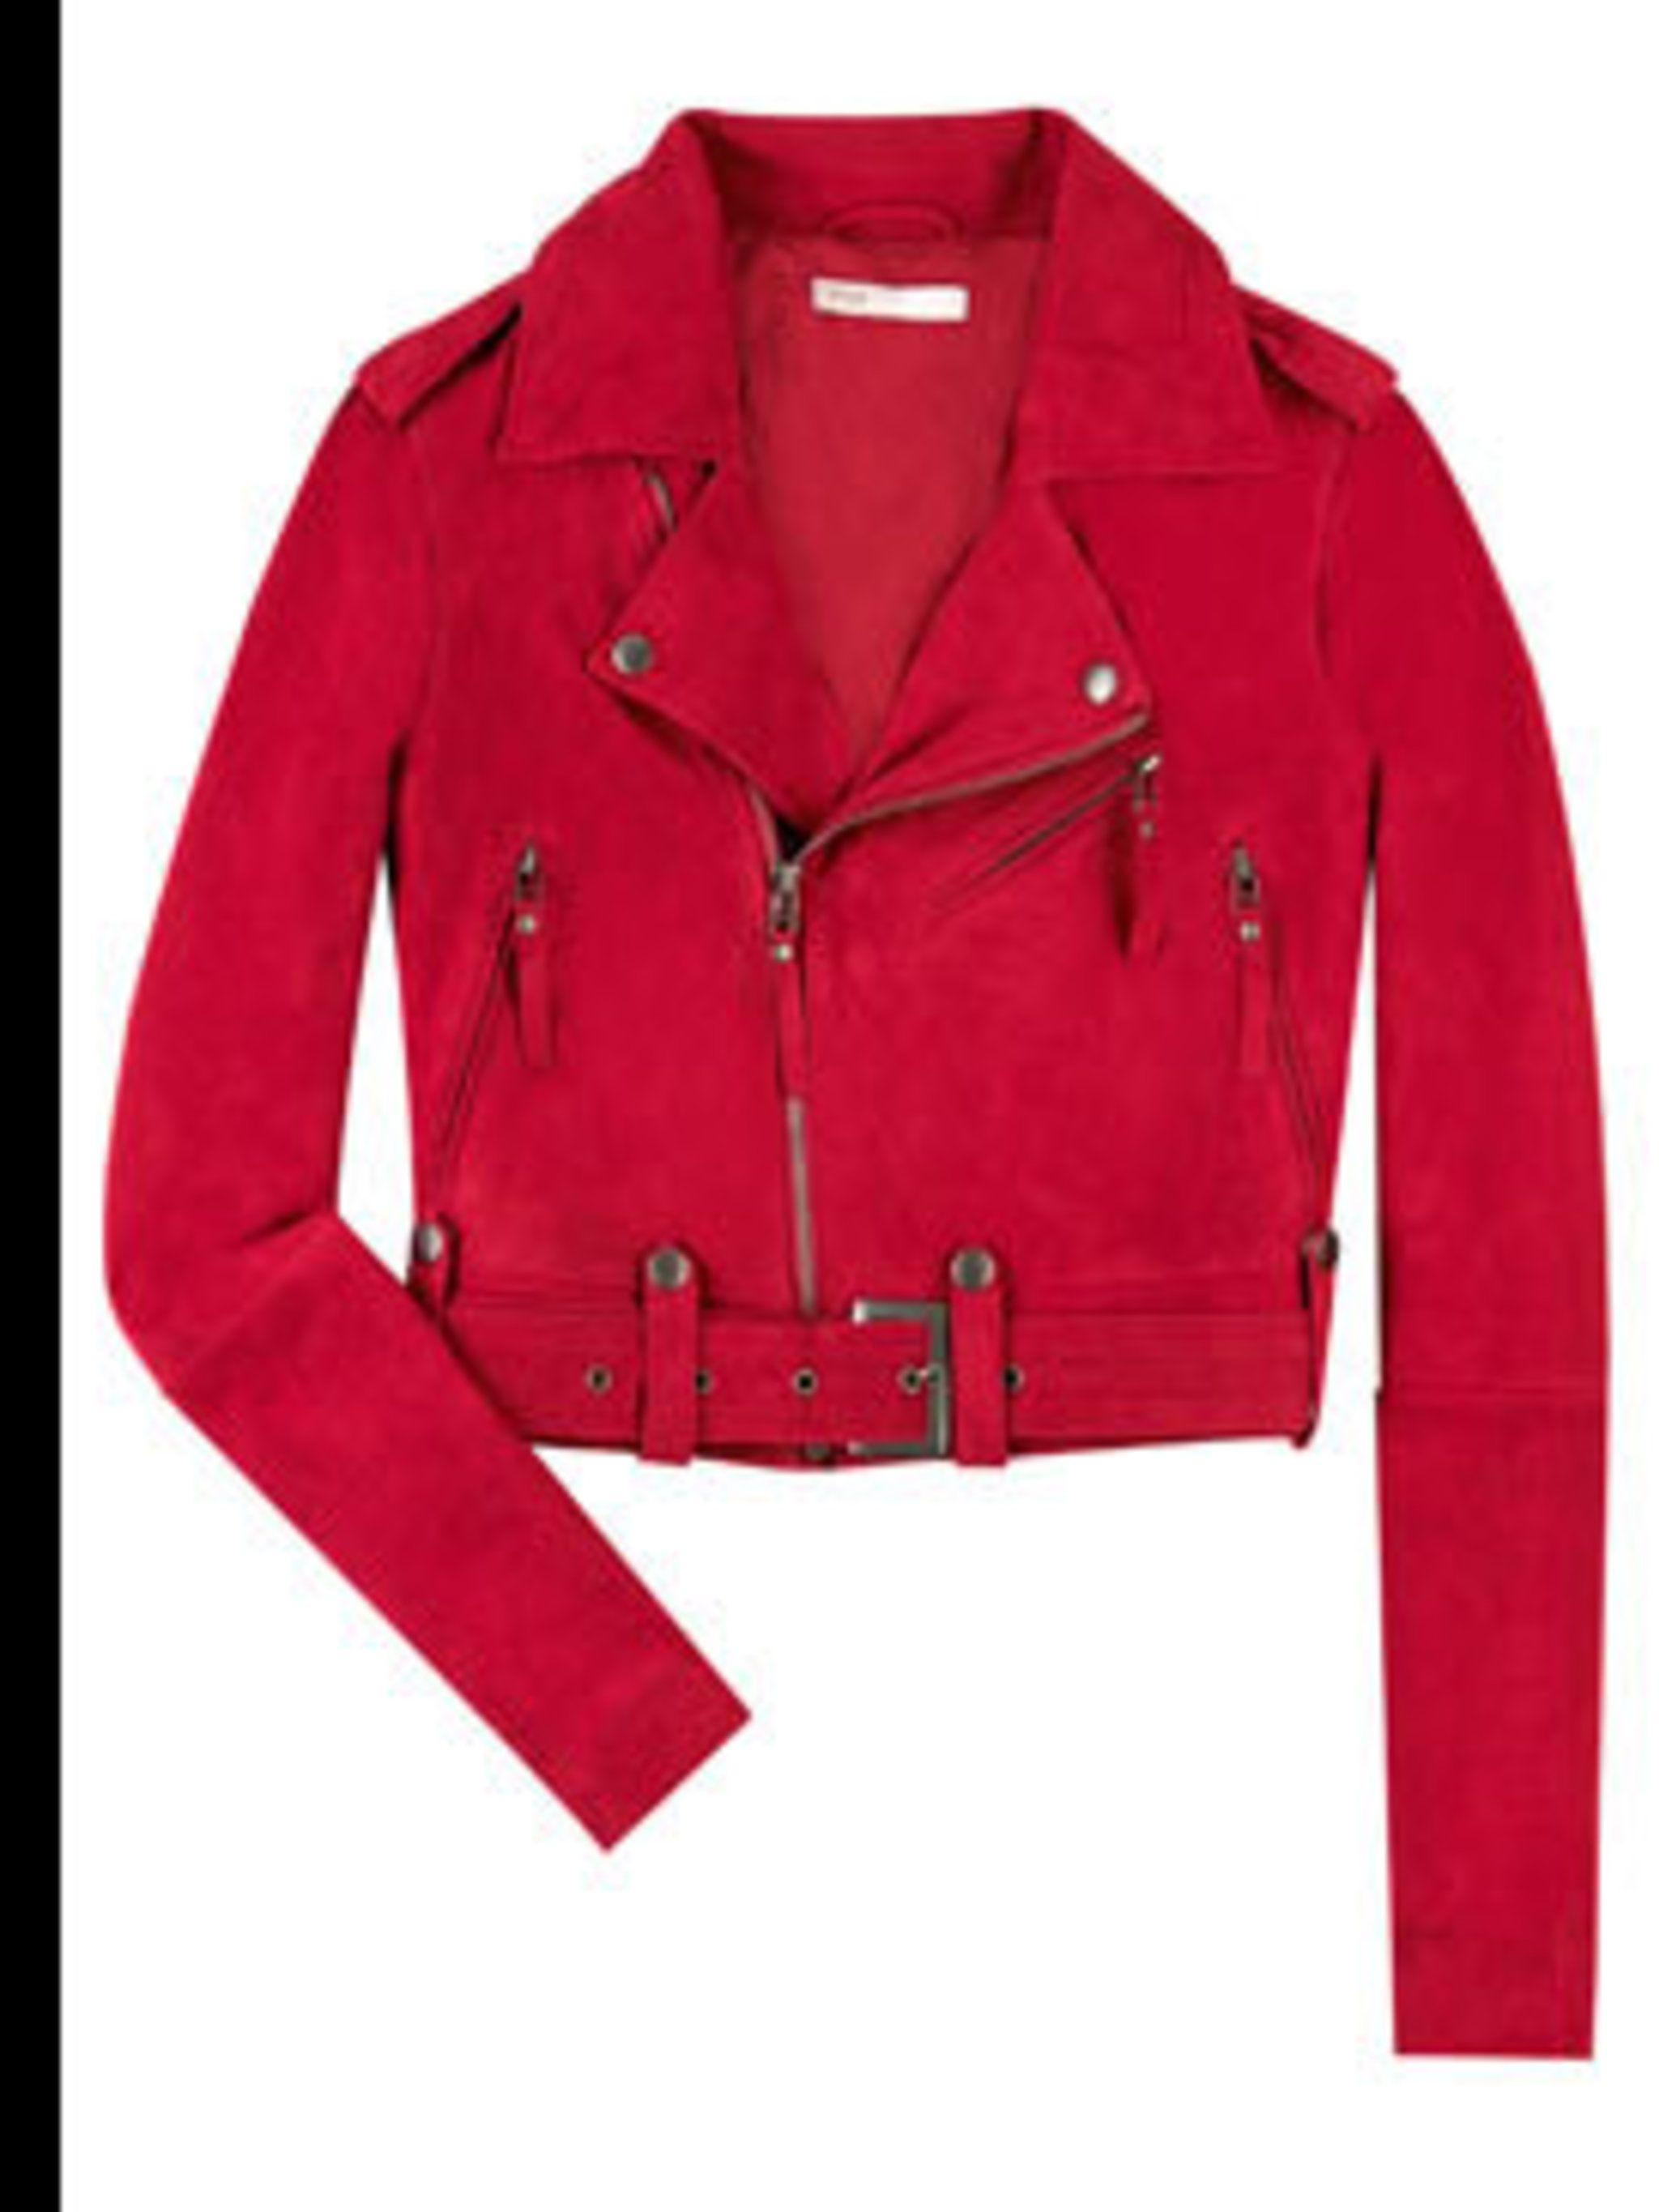 "<p>Red suede jacket, £225, by Maje, available at <a href=""http://www.net-a-porter.com/product/42213"">Net-a-porter.com</a></p>"